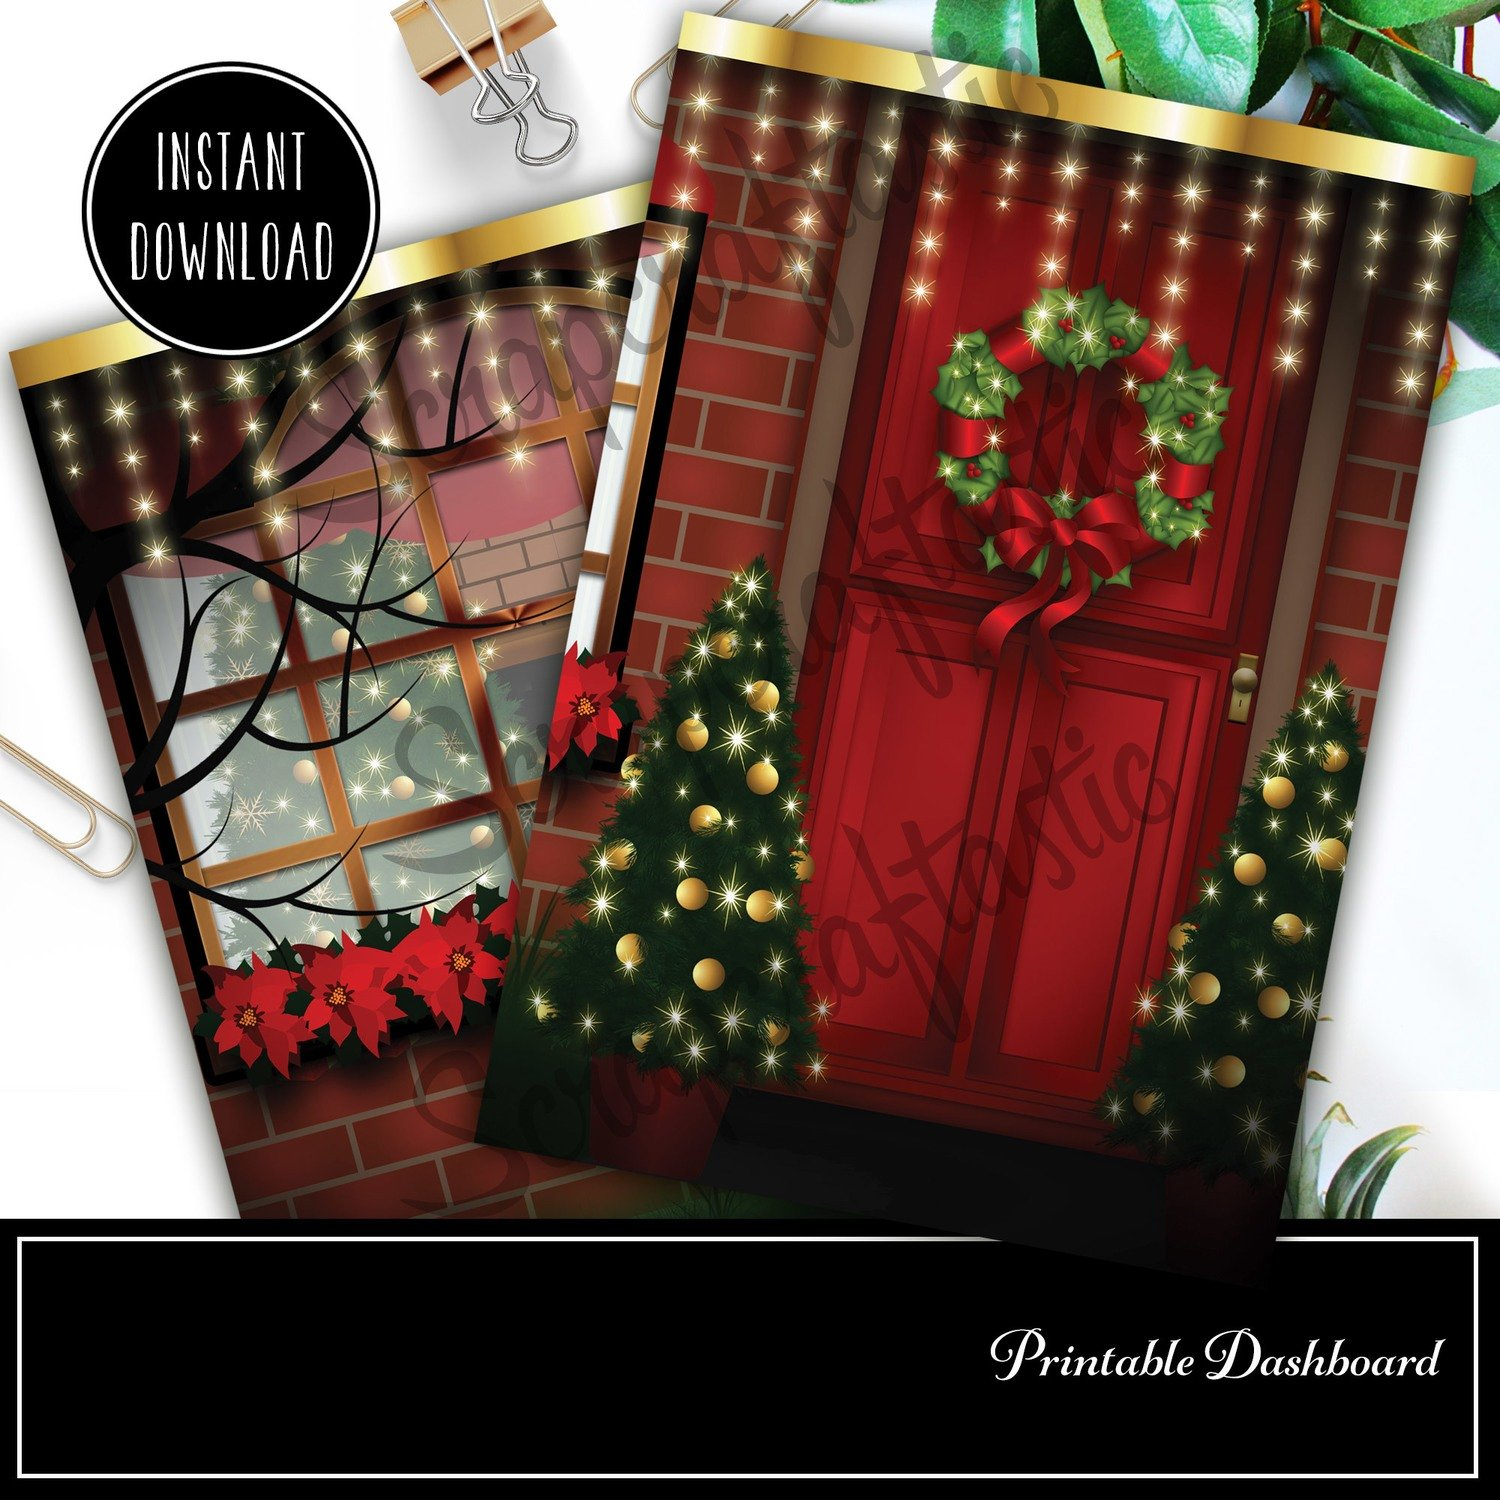 Christmas Digital Illustration B6 Printable / Digital Download Dashboard